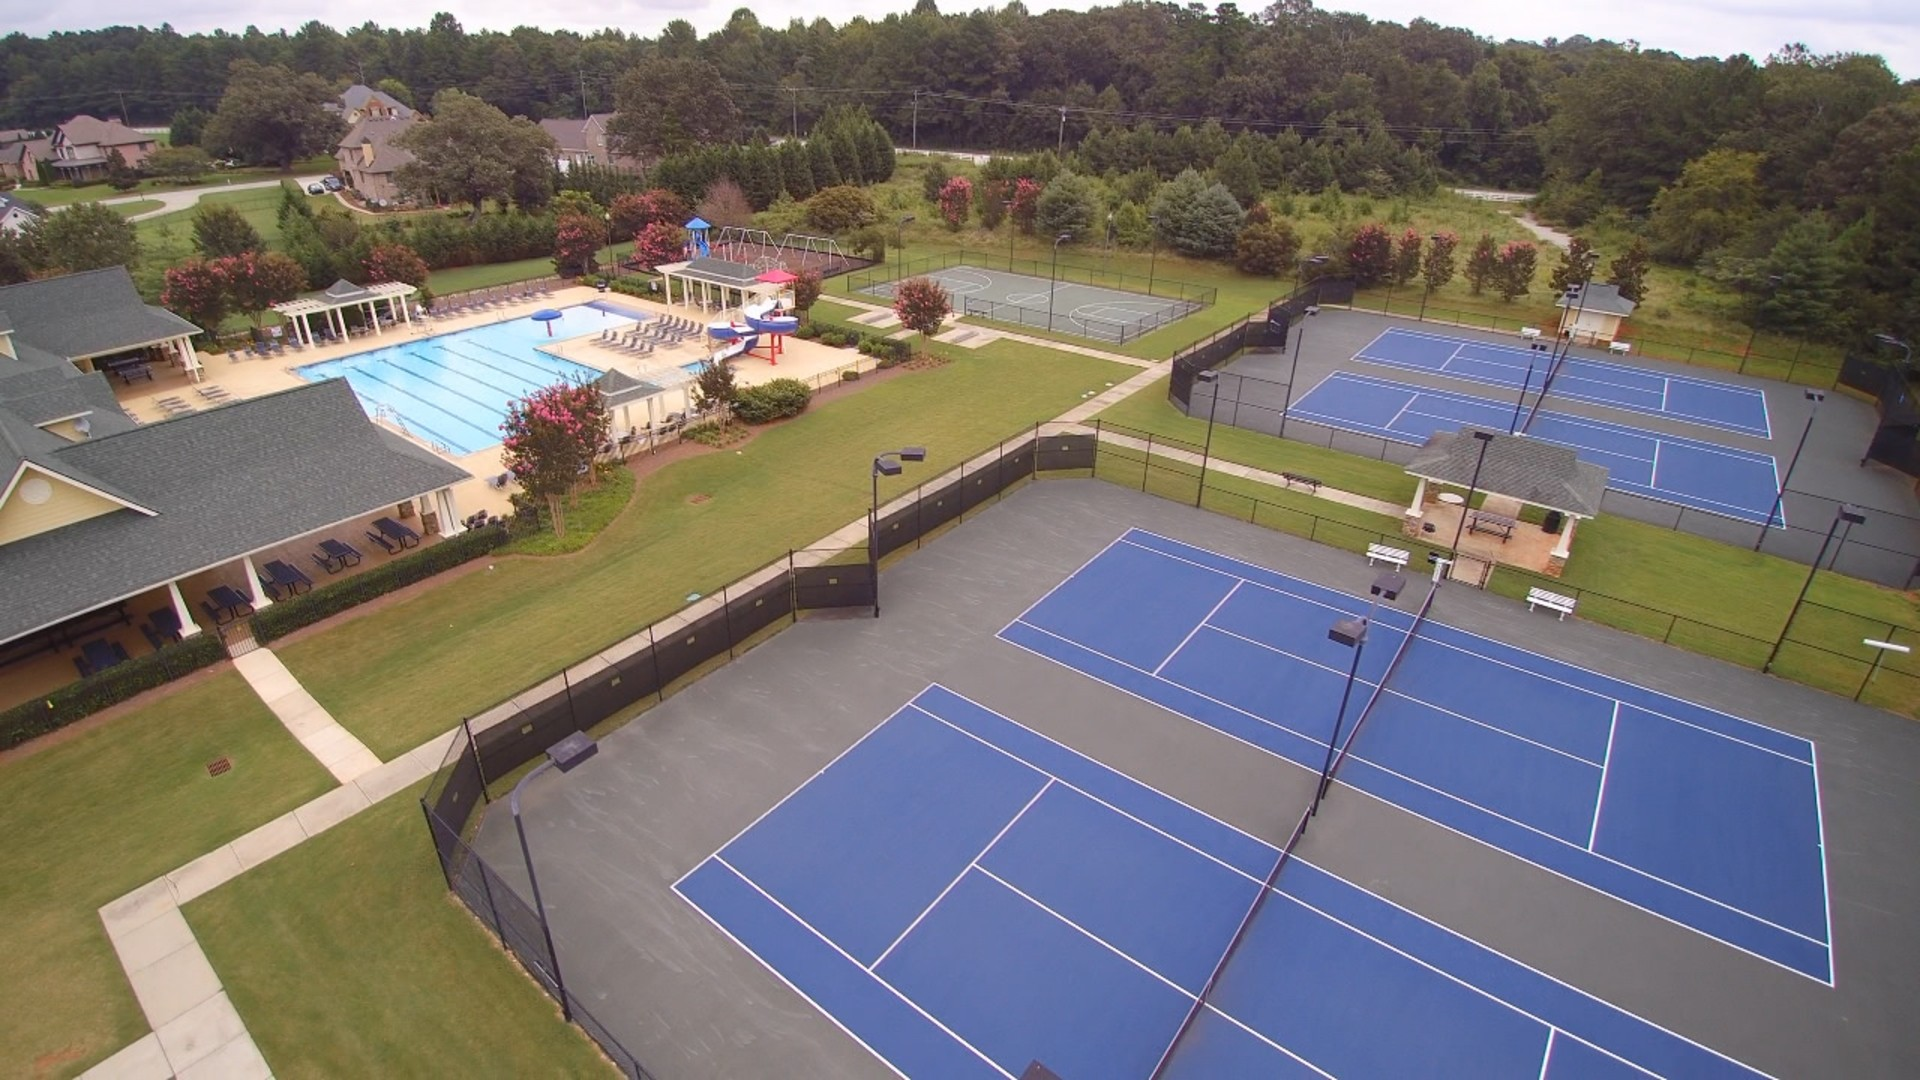 Drone_Tennis_TraditionsO00120171106081847